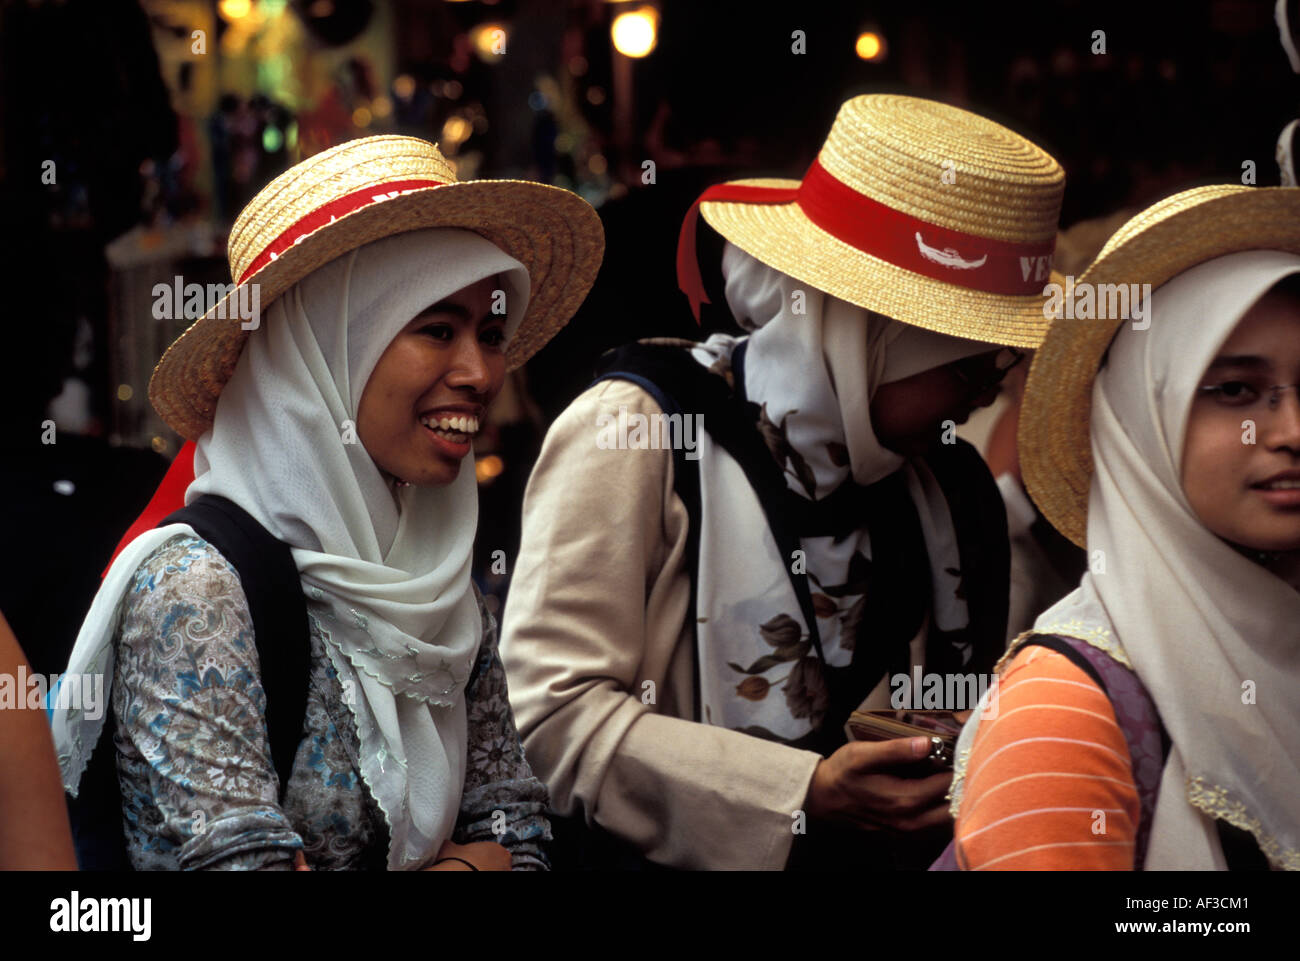 Muslim Women wearing headscarves and boaters, Venice, Italy - Stock Image